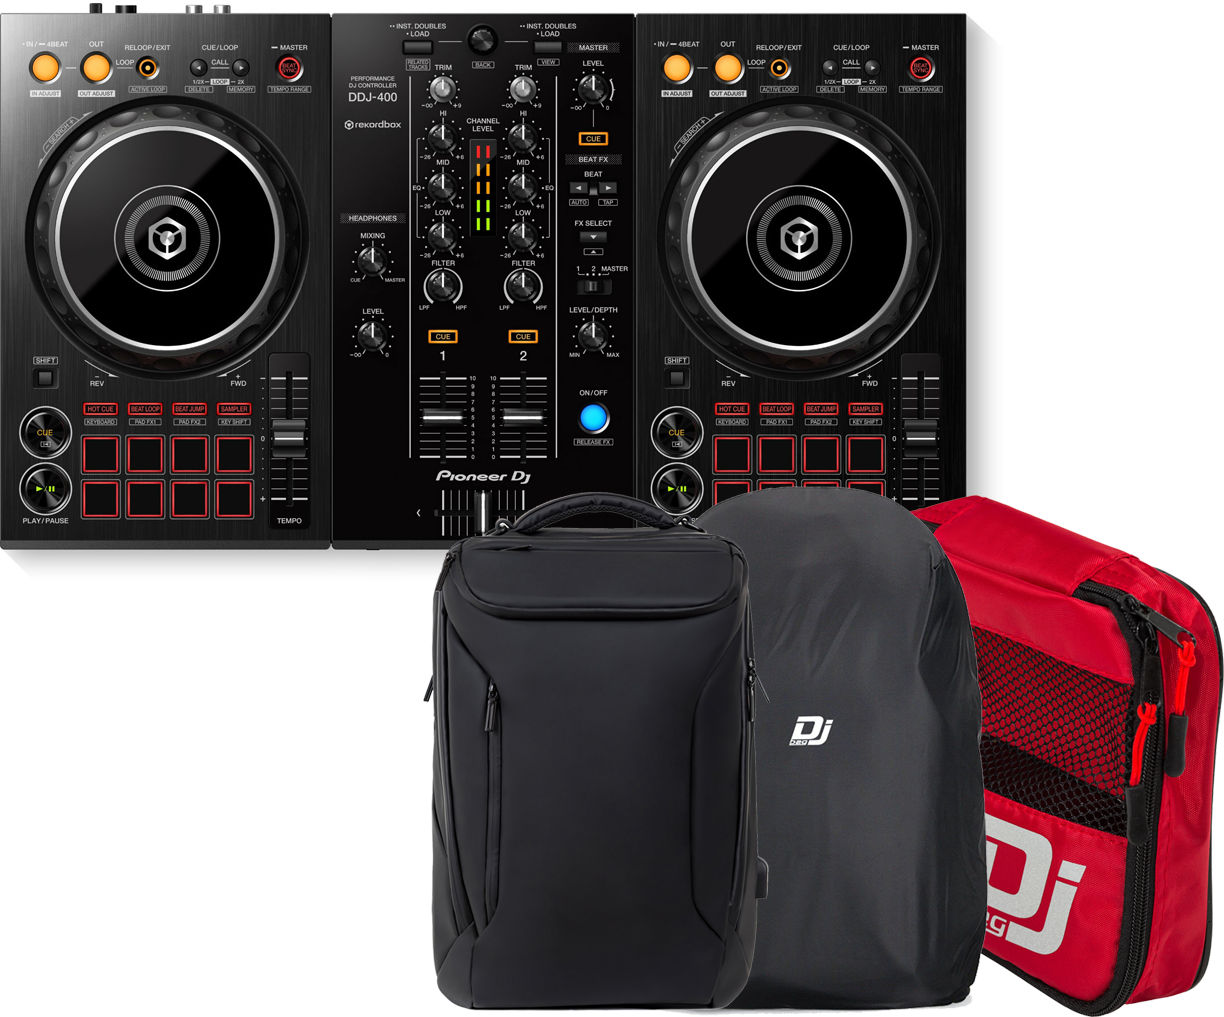 Dj-контроллер Pioneer DDJ-400 + DJ-BAG Urban BackPack с аксессуарами